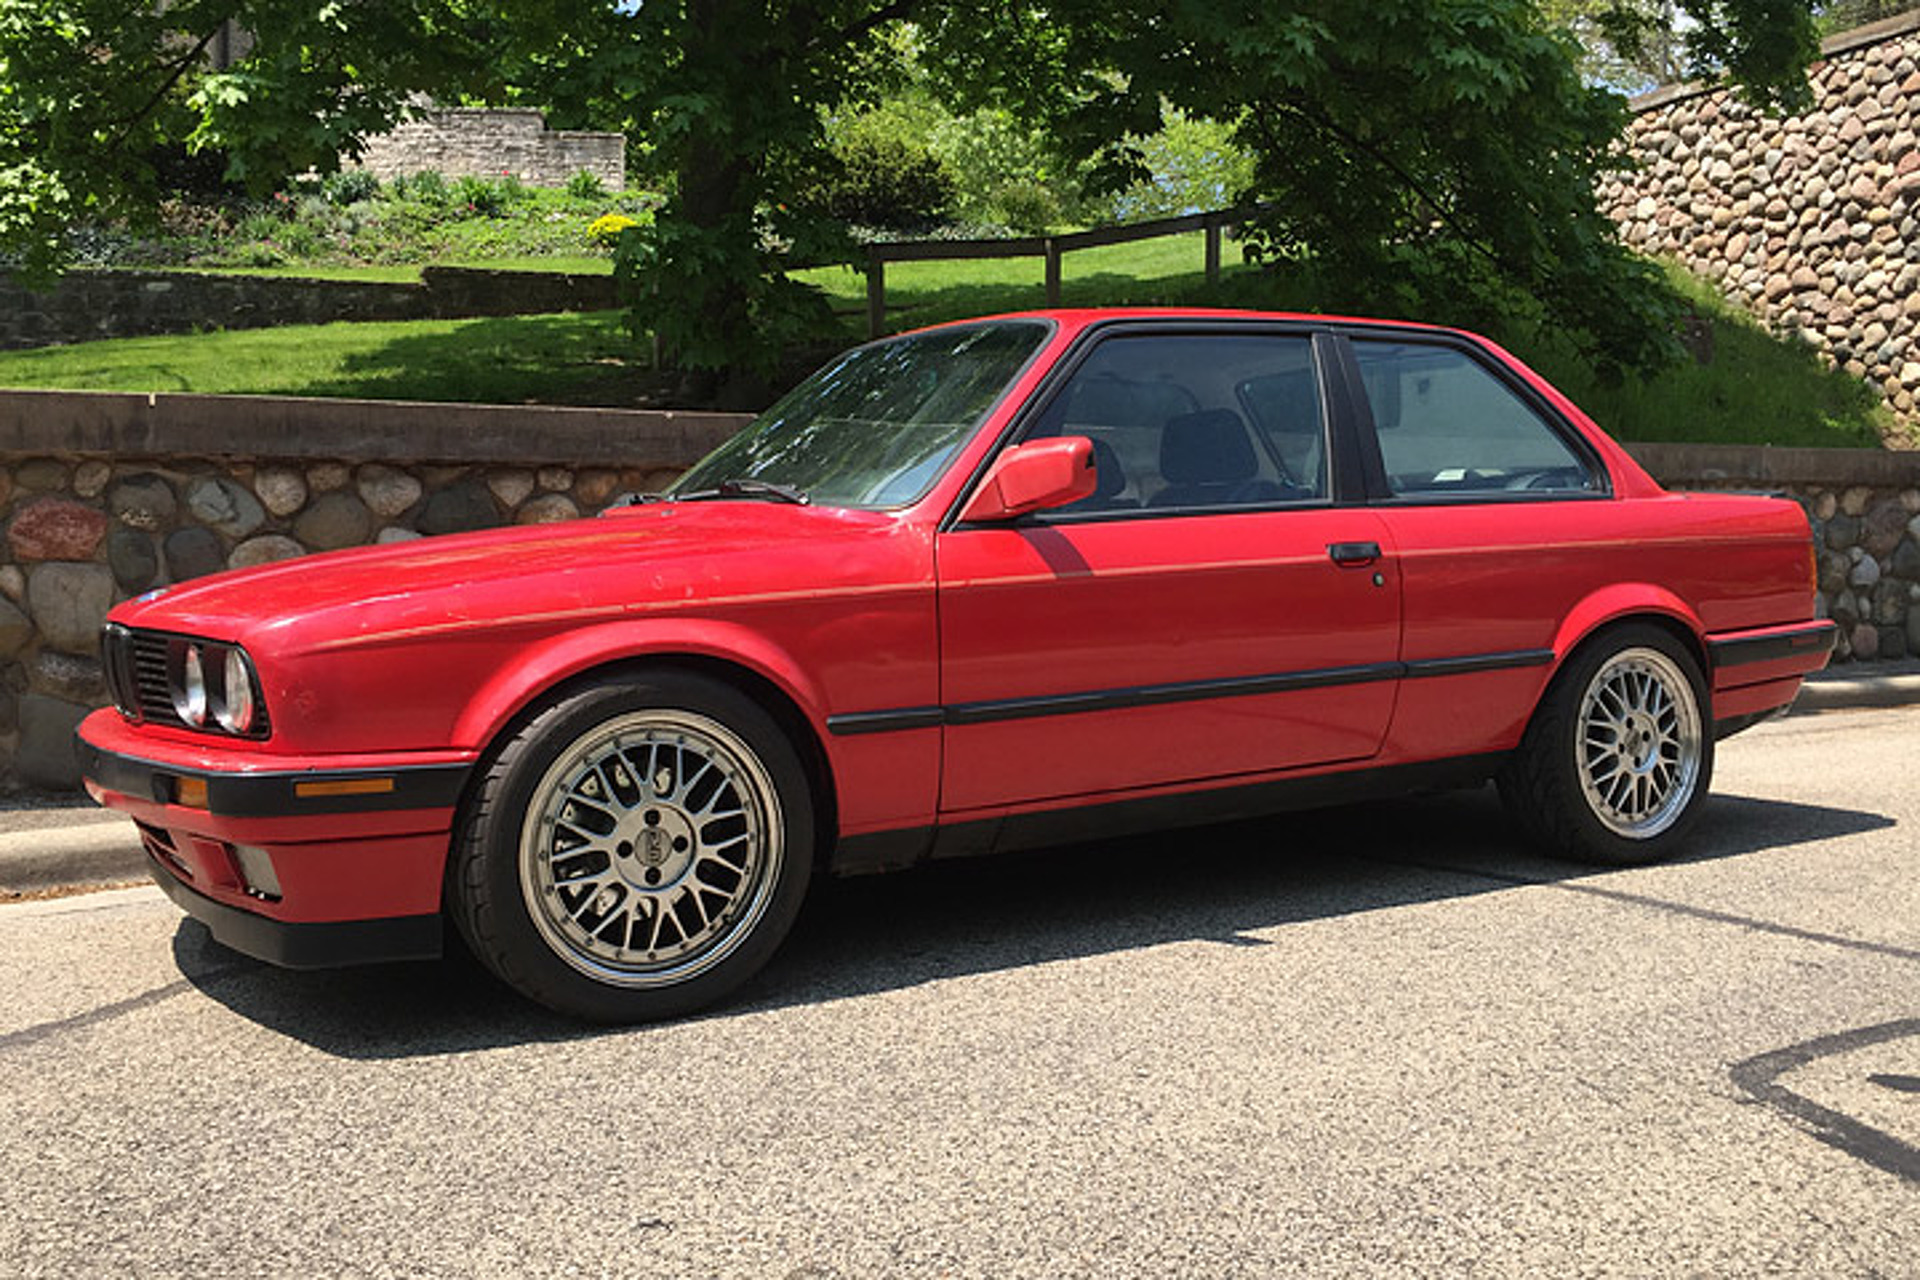 Super This '91 BMW 318is Finally Has the V8 It Always Wanted EC44